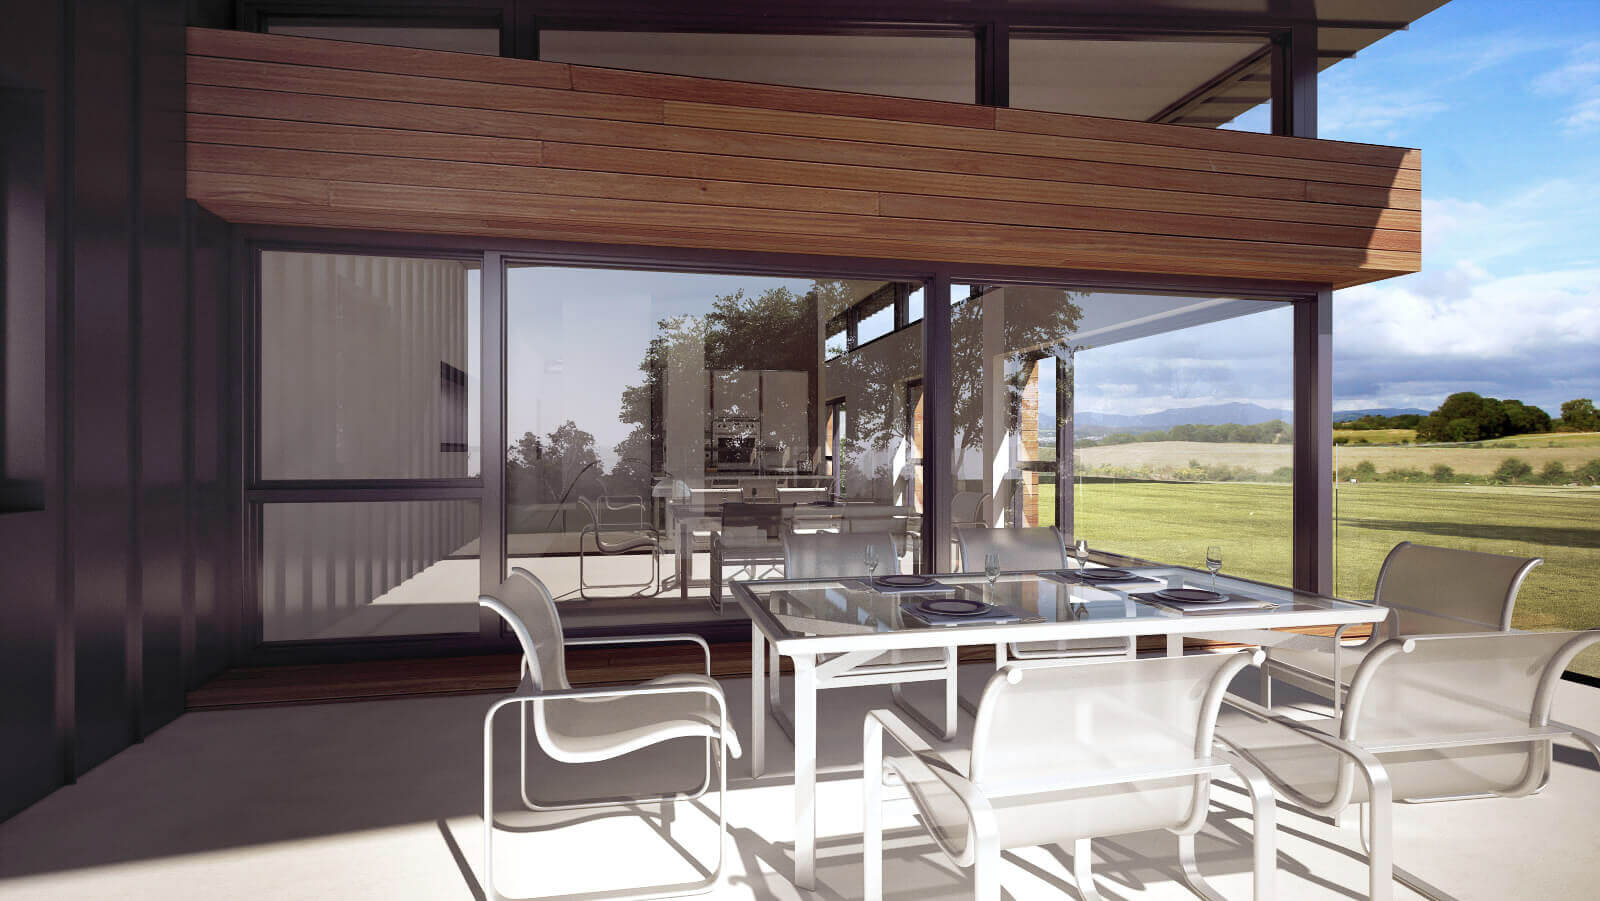 External raised terrace area with modern dining table and chairs overlooking the countryside and internal open plan living areas.